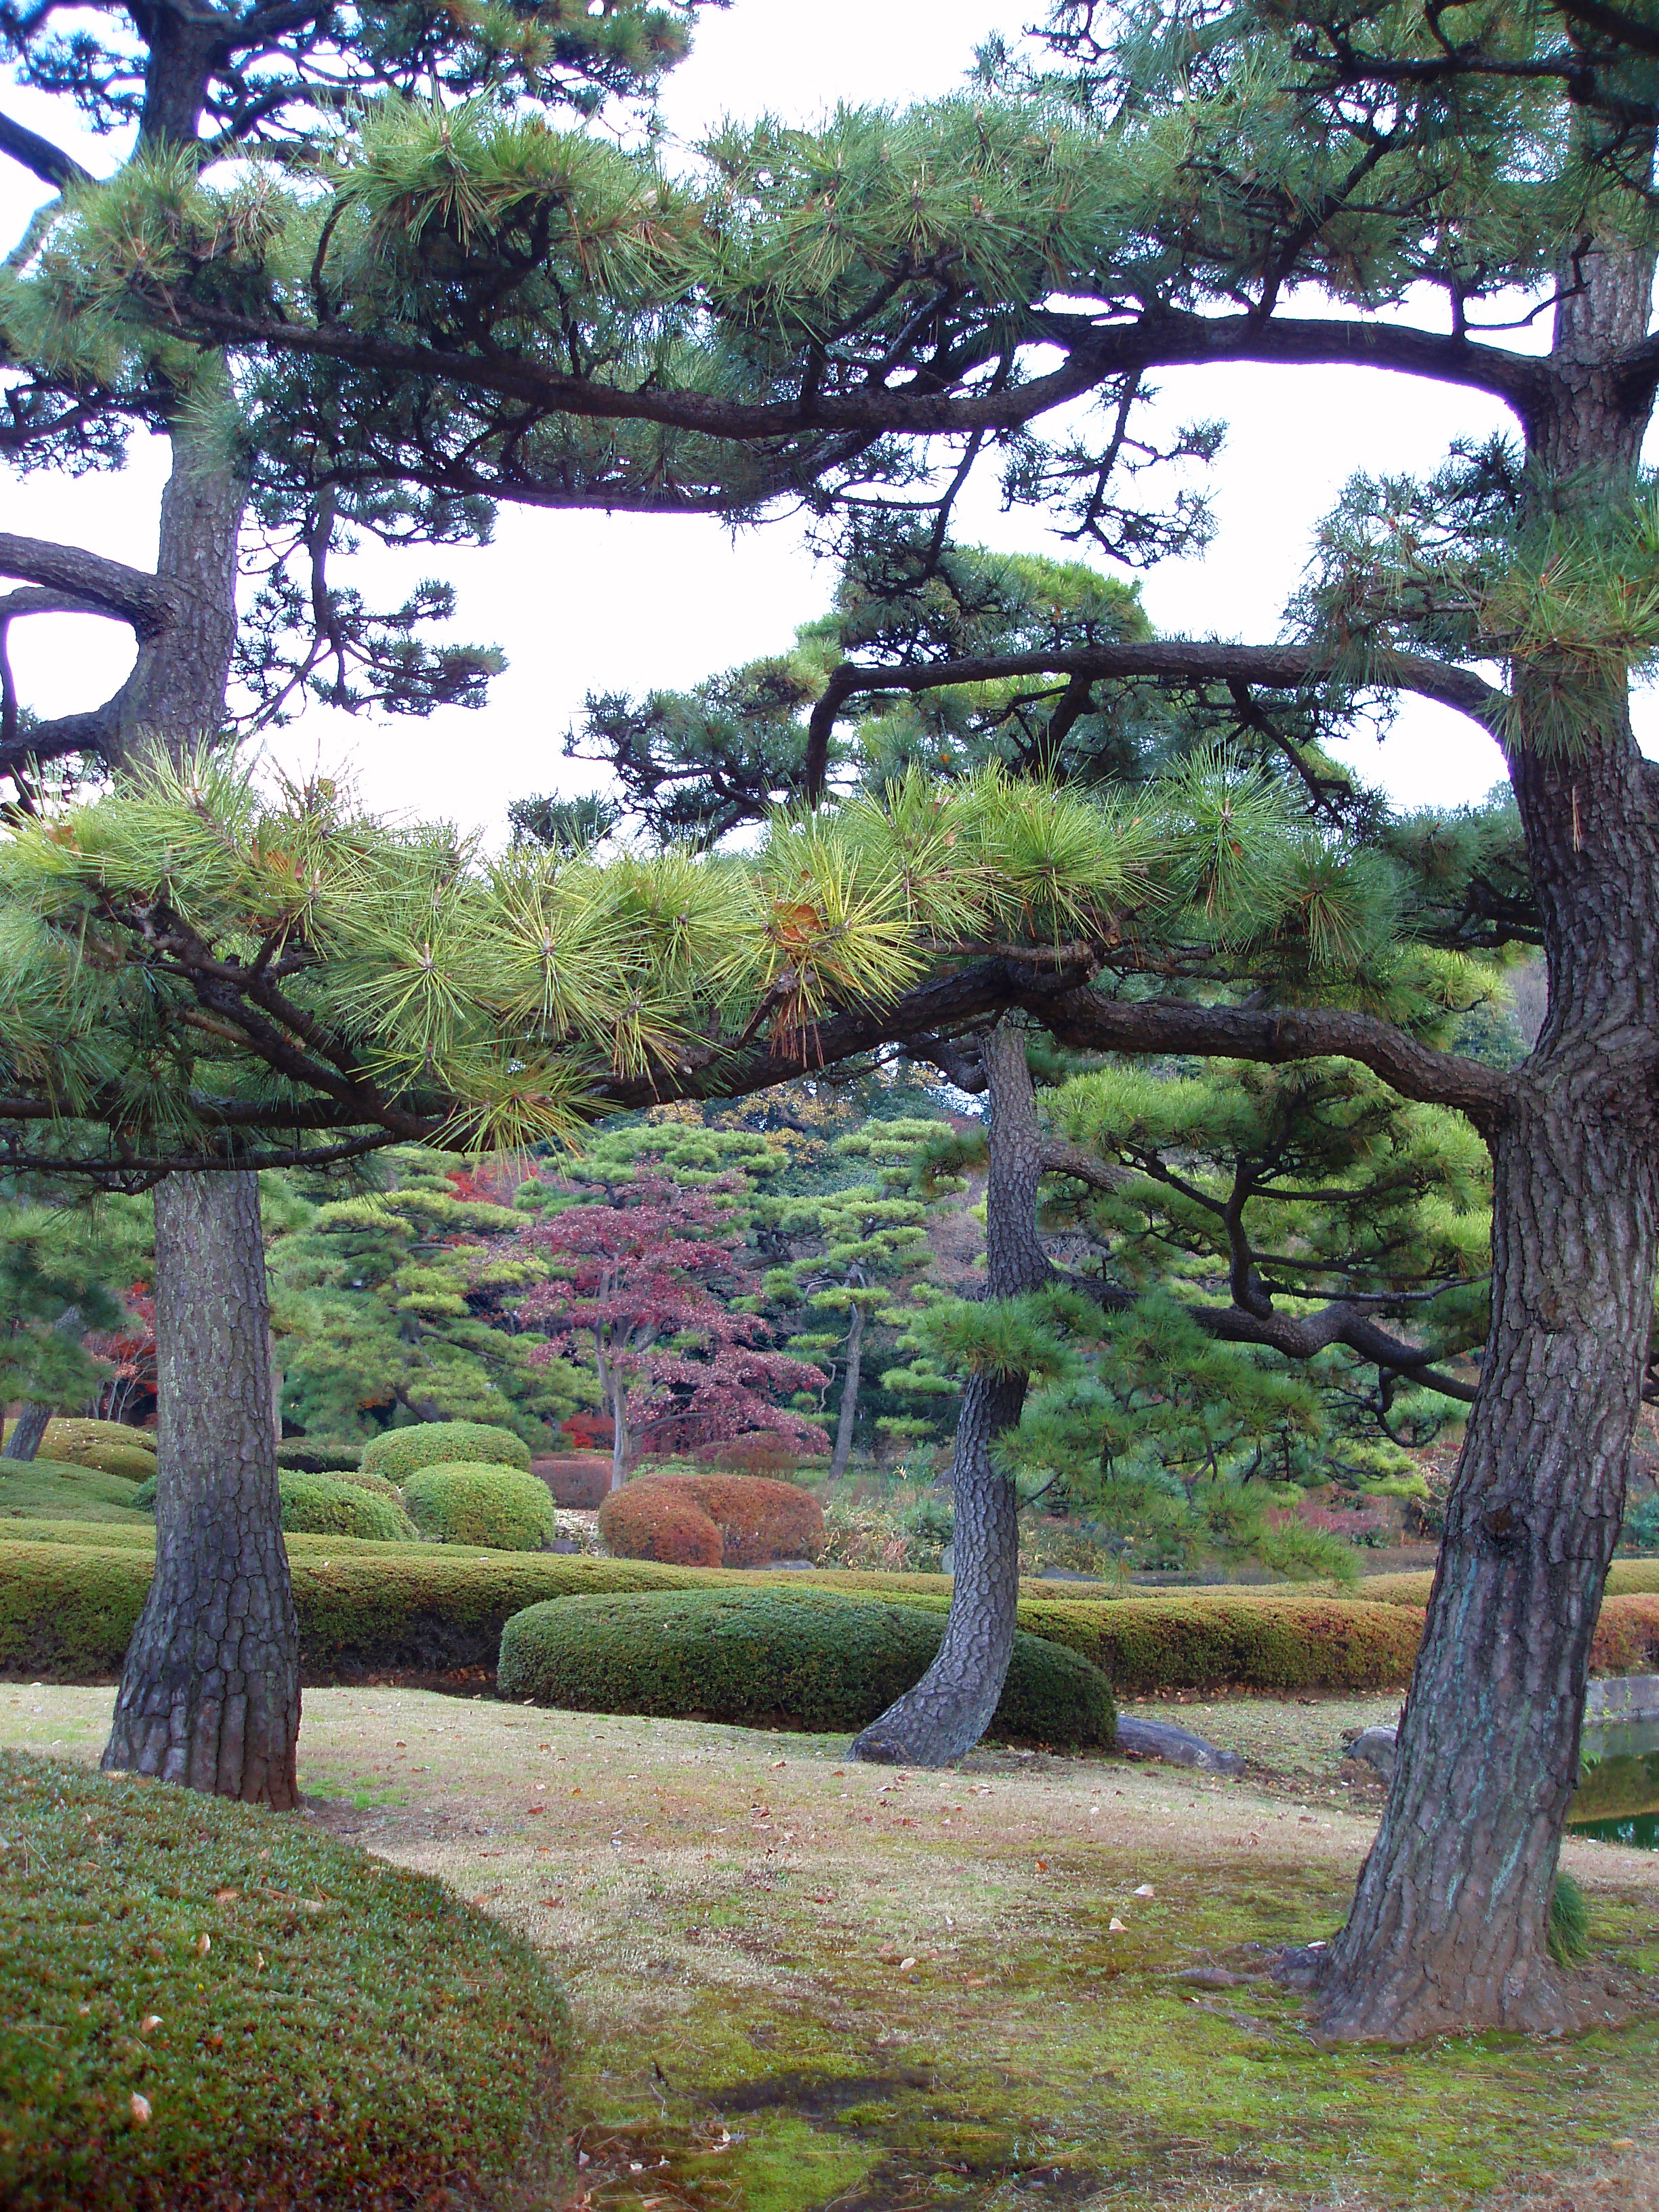 manicured pine trees in a tokyo ornamental park garden